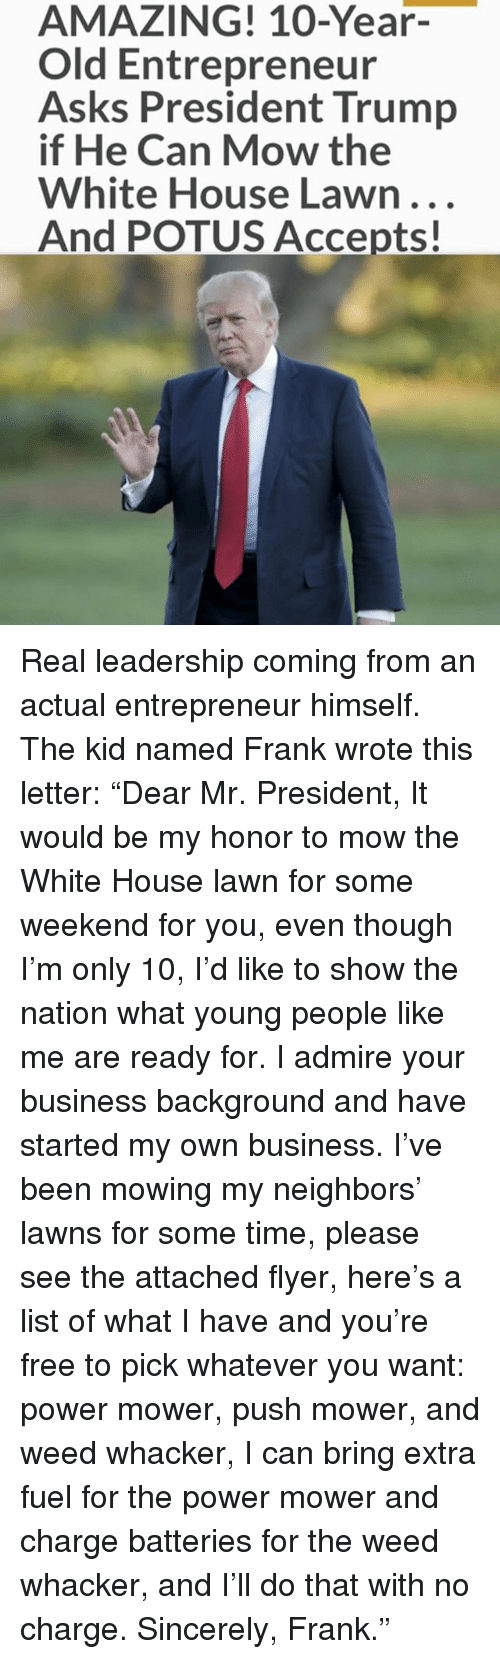 """list ofs: AMAZING! 10-Year-  Old Entrepreneur  Asks President Trump  if He Can Mow the  White House Lawn...  And POTUS Accepts! Real leadership coming from an actual entrepreneur himself. The kid named Frank wrote this letter: """"Dear Mr. President, It would be my honor to mow the White House lawn for some weekend for you, even though I'm only 10, I'd like to show the nation what young people like me are ready for. I admire your business background and have started my own business. I've been mowing my neighbors' lawns for some time, please see the attached flyer, here's a list of what I have and you're free to pick whatever you want: power mower, push mower, and weed whacker, I can bring extra fuel for the power mower and charge batteries for the weed whacker, and I'll do that with no charge. Sincerely, Frank."""""""